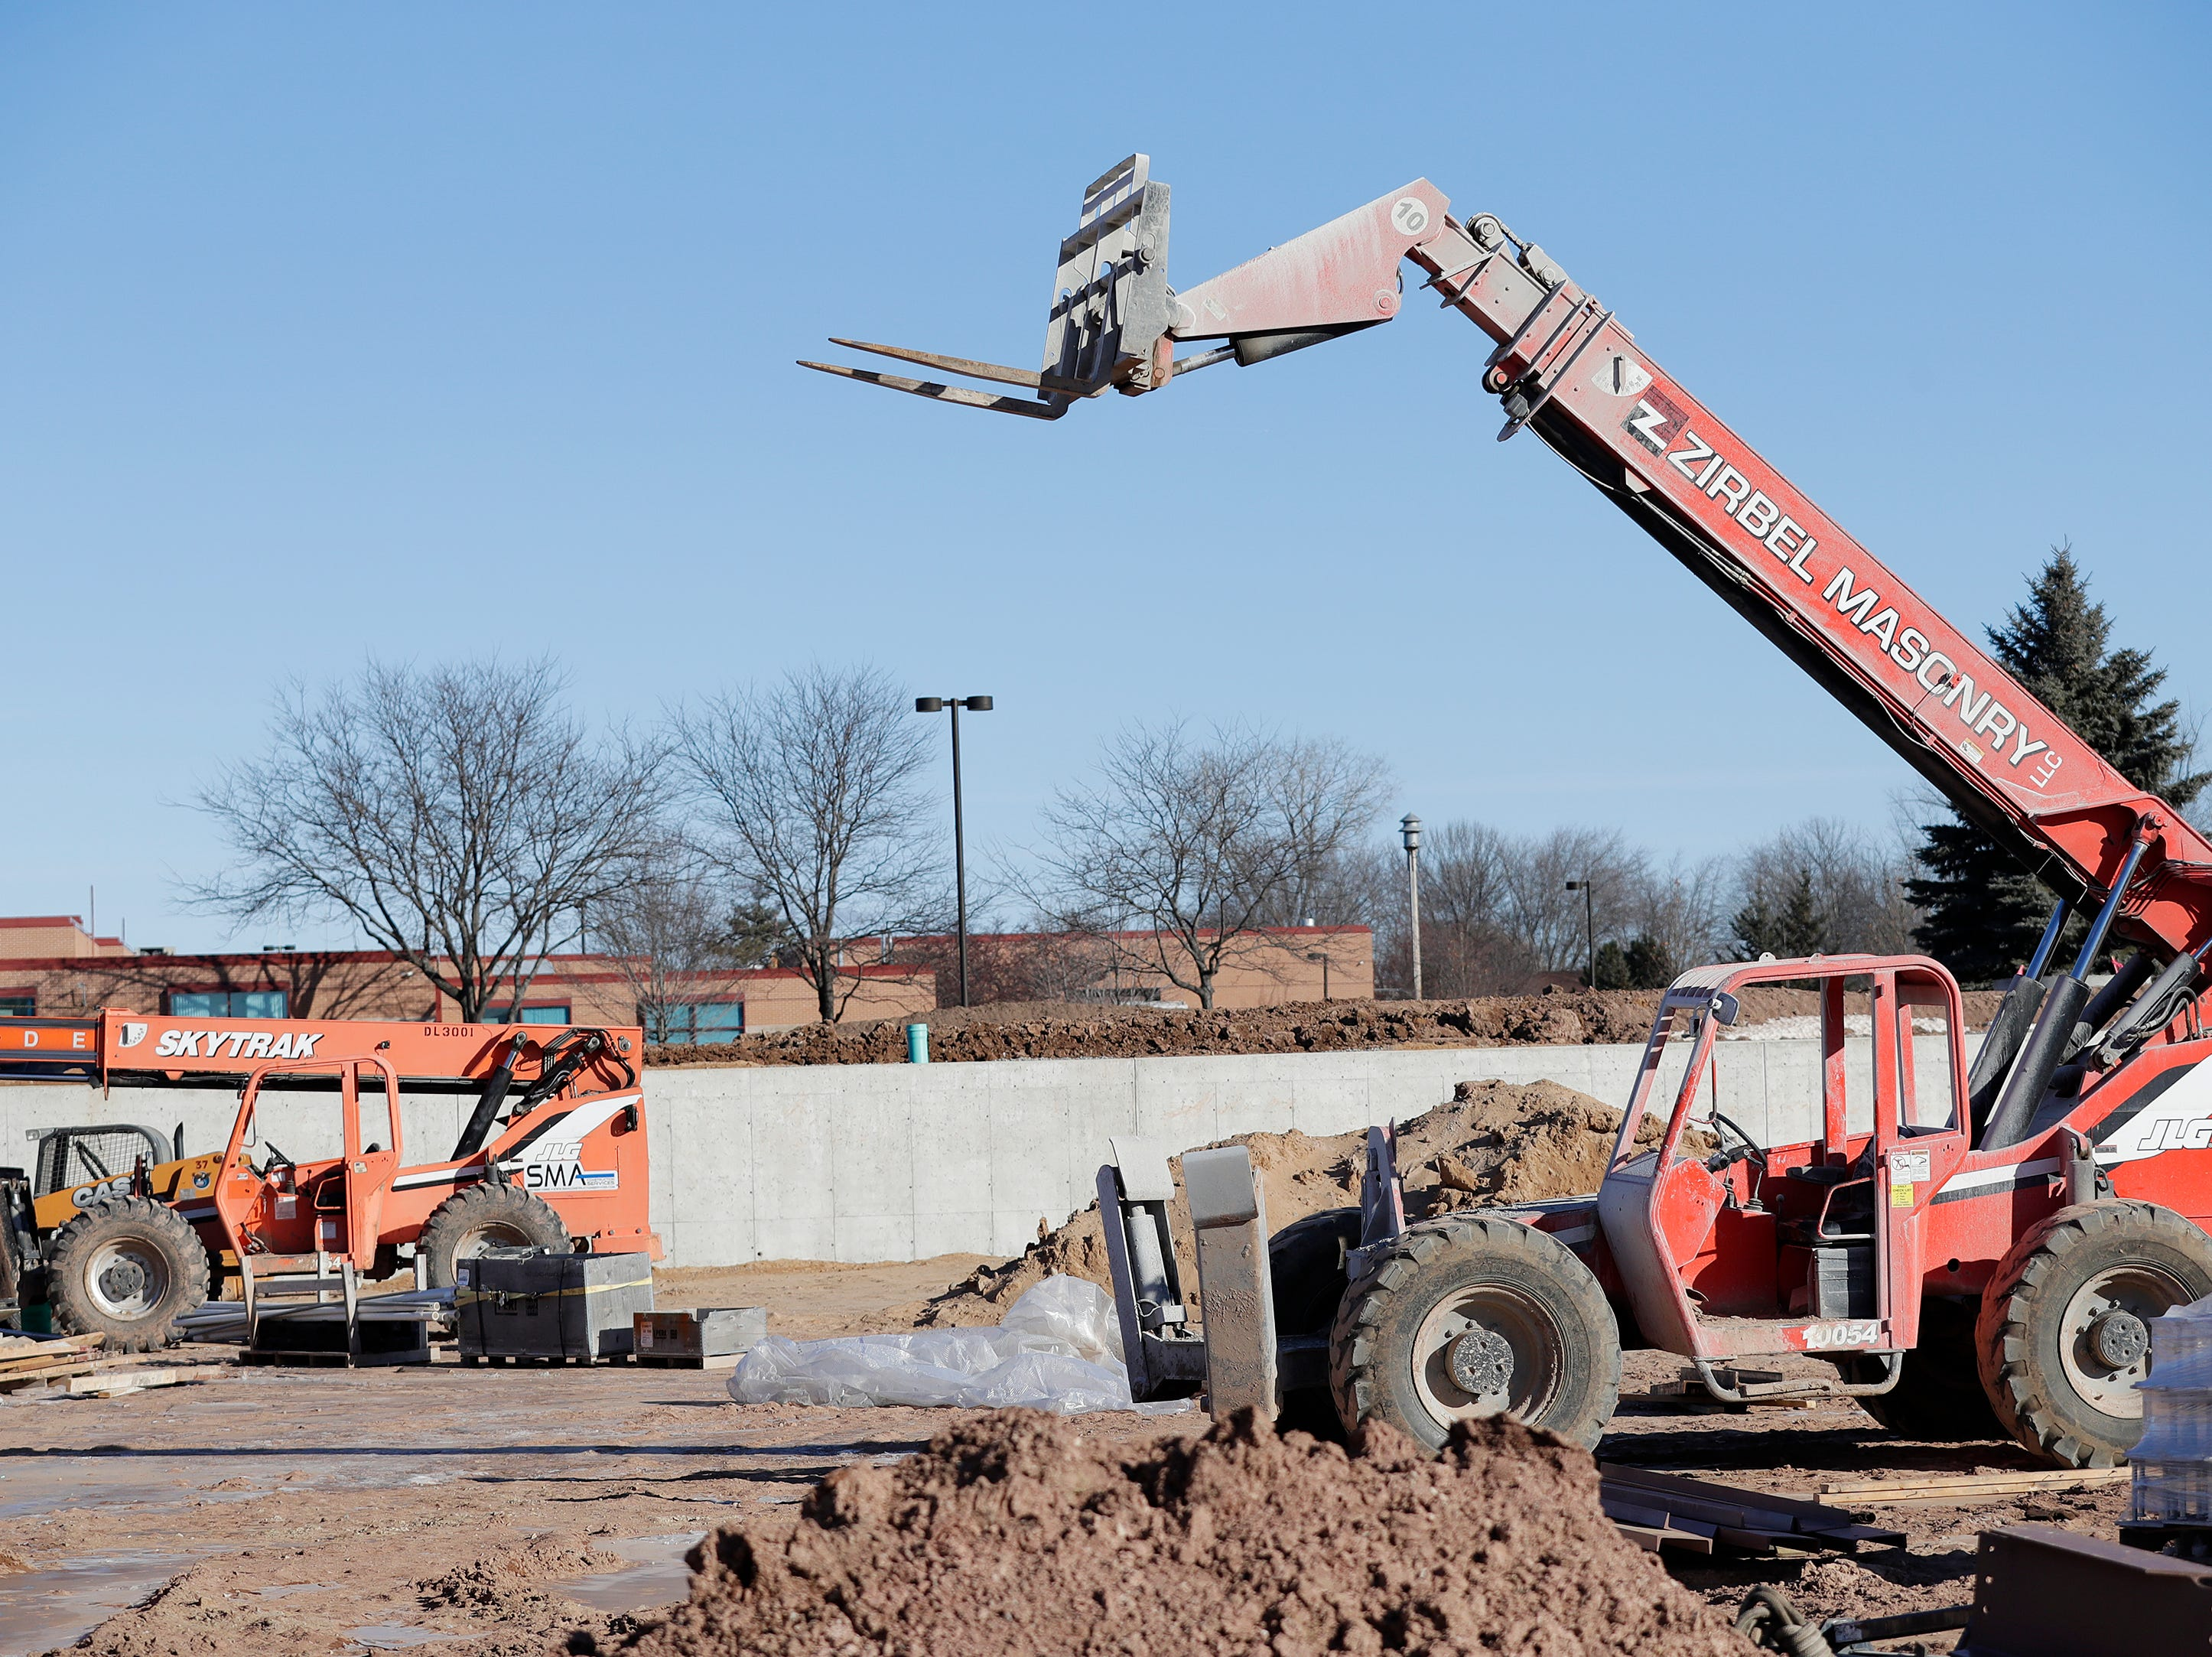 Construction equipment is parked in left field of Capital Credit Union Park on Wednesday, January 16, 2019 in Ashwaubenon, Wis. The stadium is set to open this spring and will host the Green Bay Booyah baseball team in the Northwoods League and a United Soccer Leagues League 2 team.